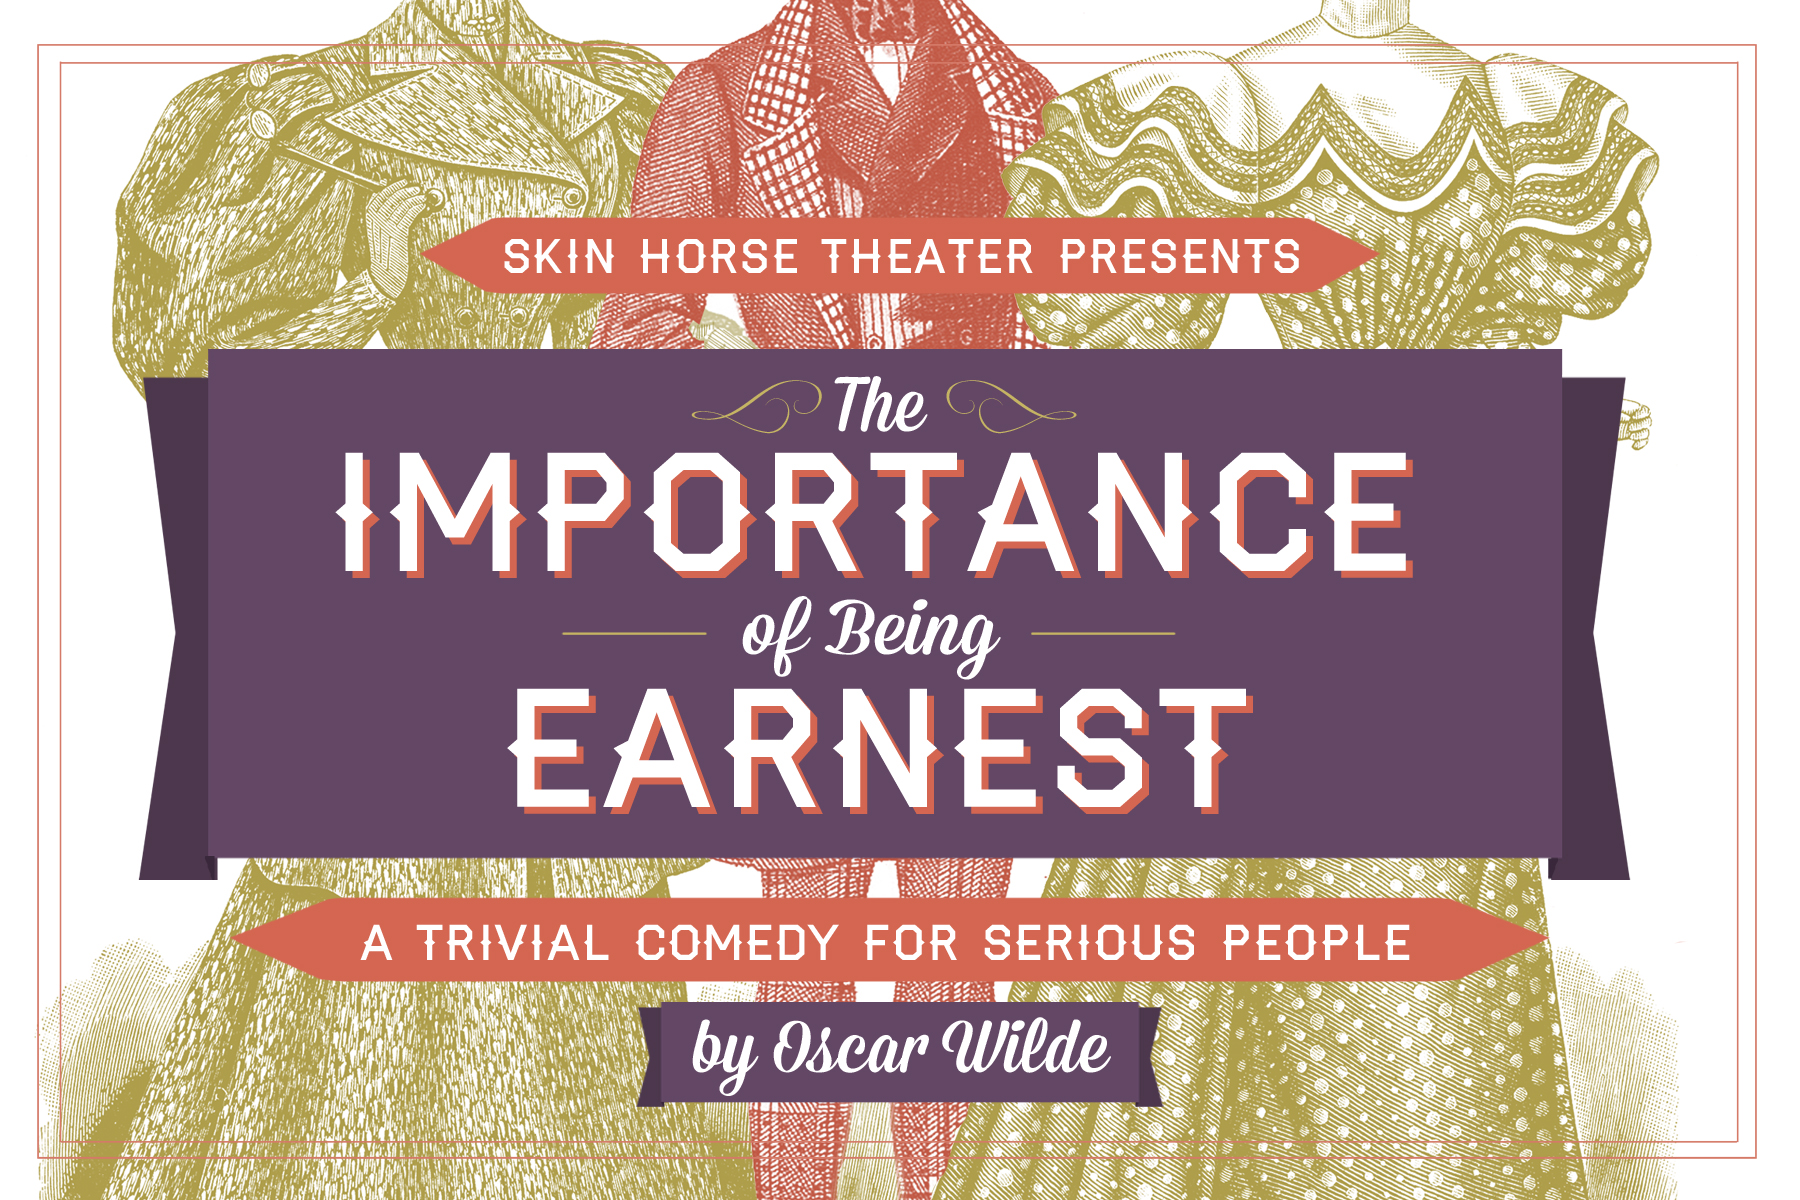 The Importance of Being Earnest – Oscar Wilde. Skin Horse Theatre – New Orleans